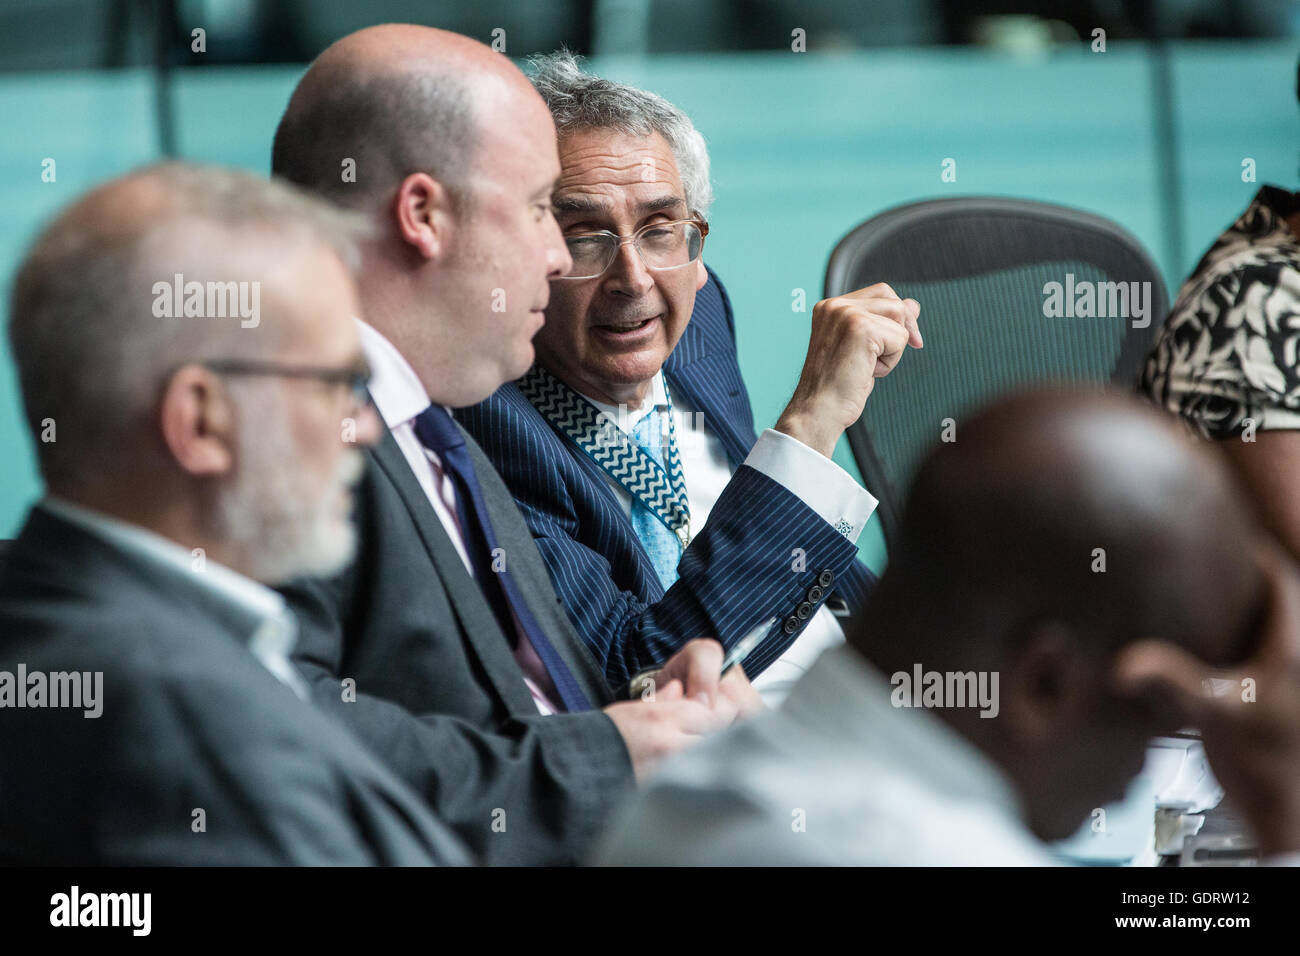 London, UK. 20th July, 2016. London Assembly Chair Tony Arbour (r) at Mayor's Question Time in City Hall. Credit: - Stock Image